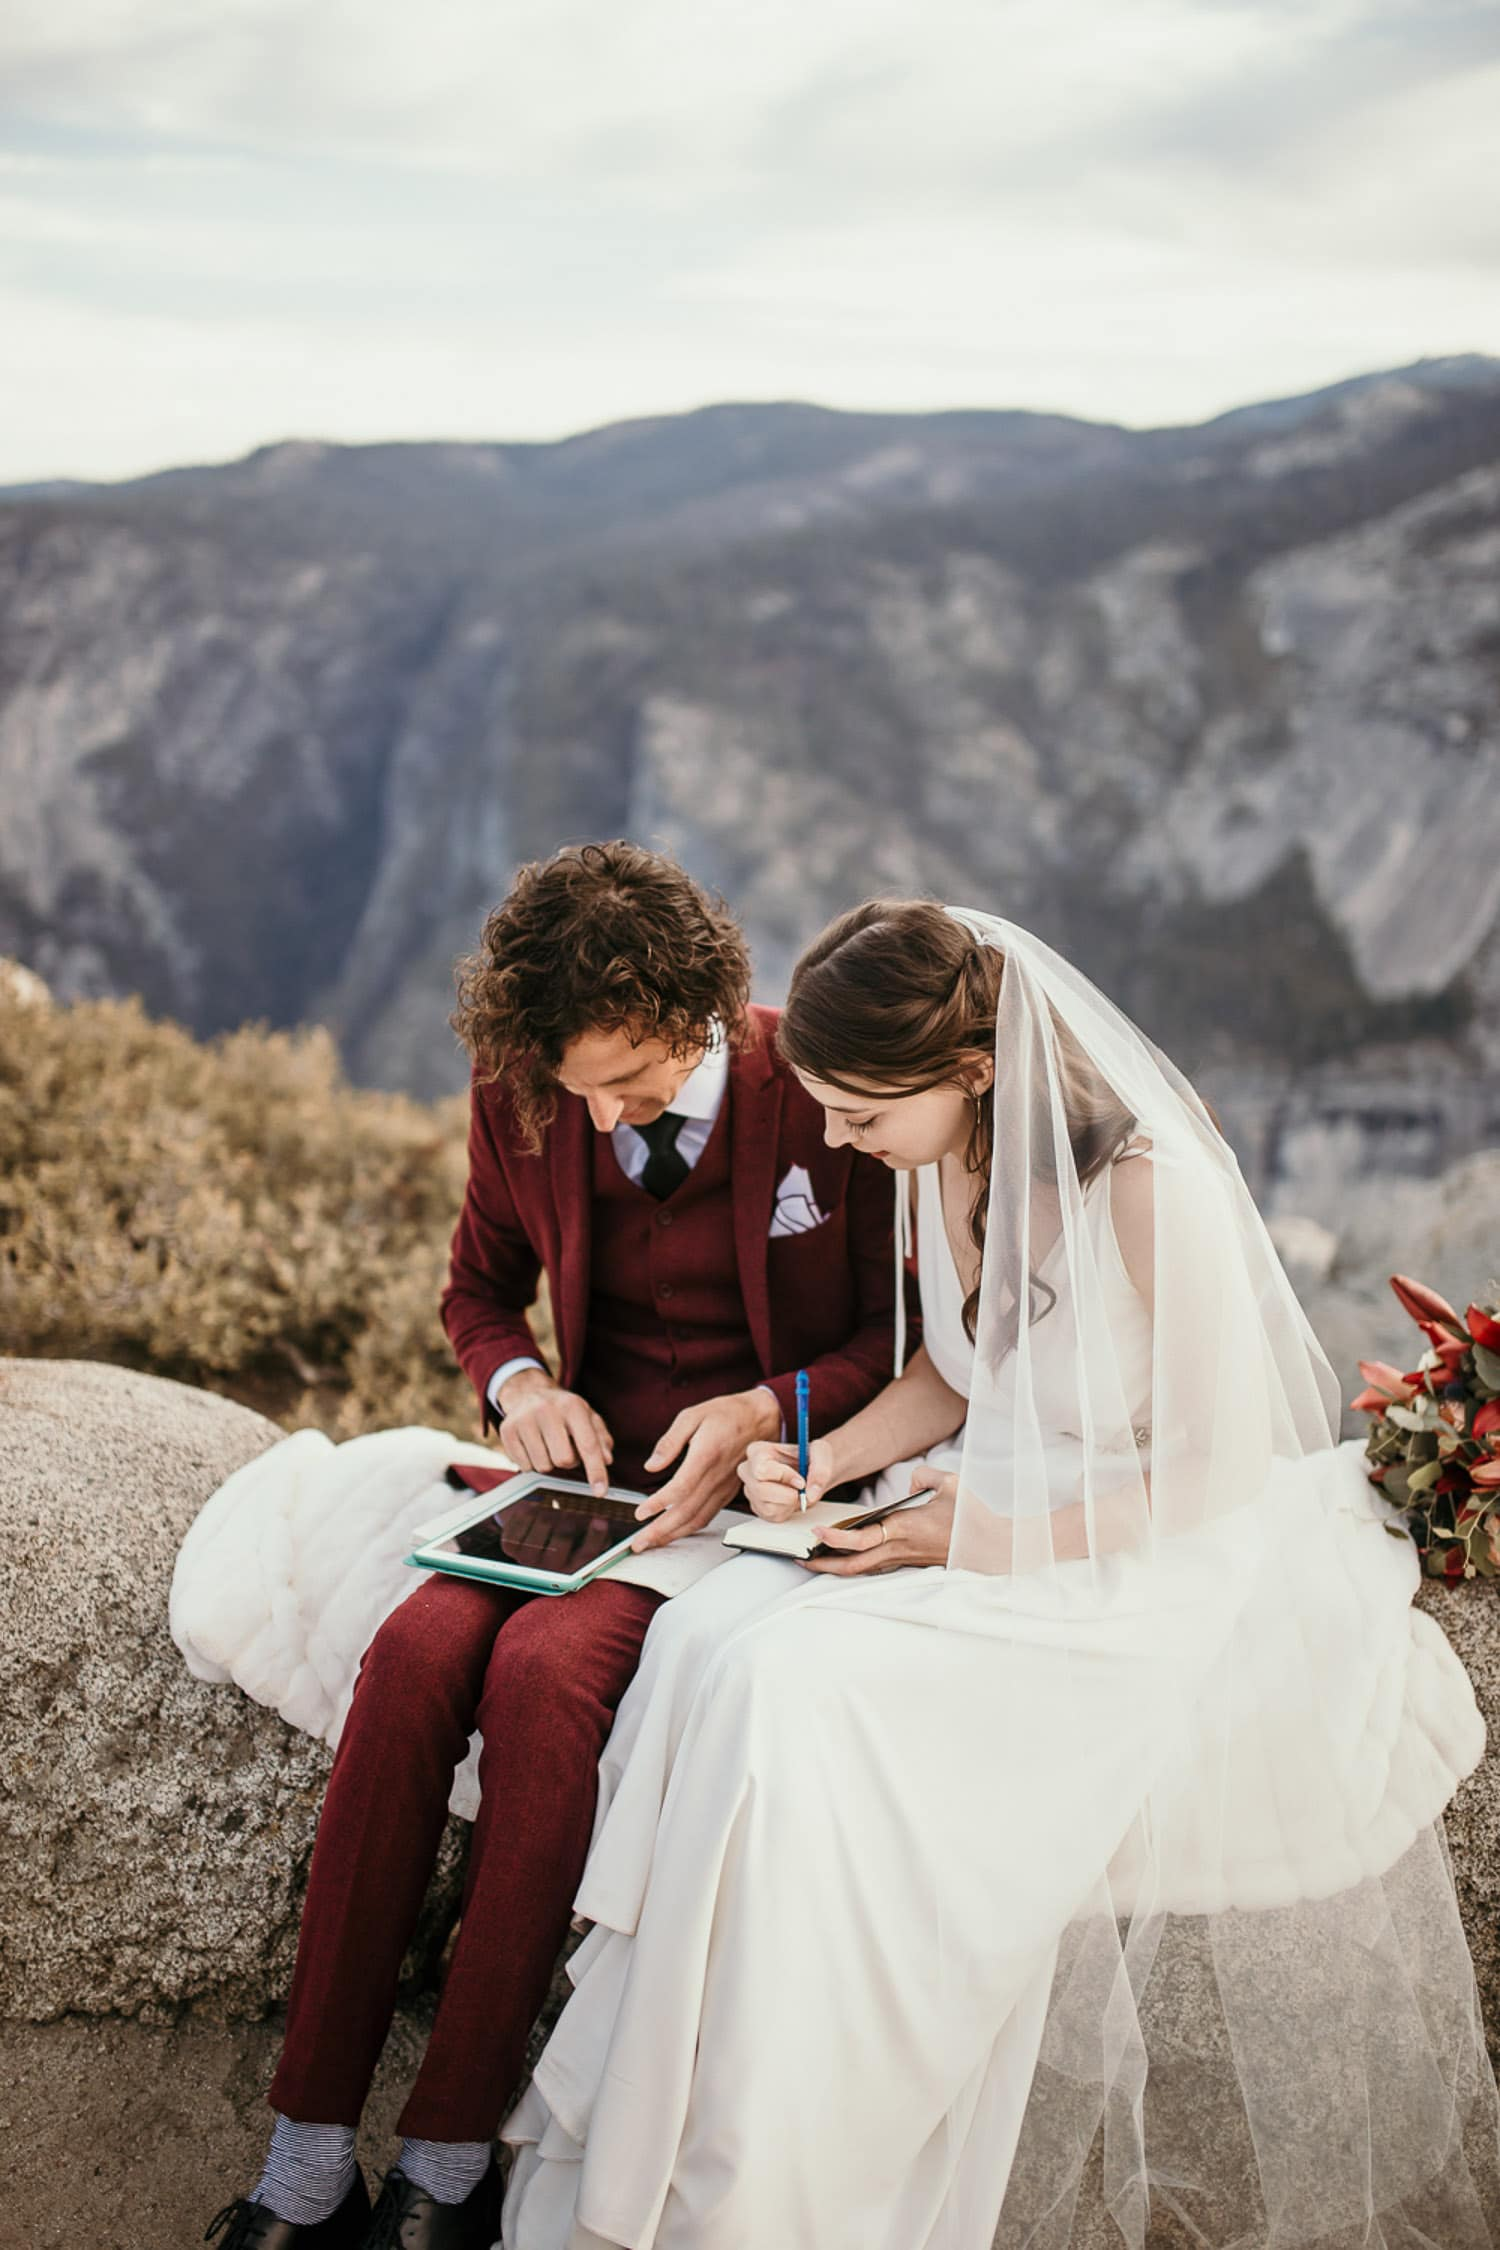 How to write your wedding vows - tips to help you write your vows